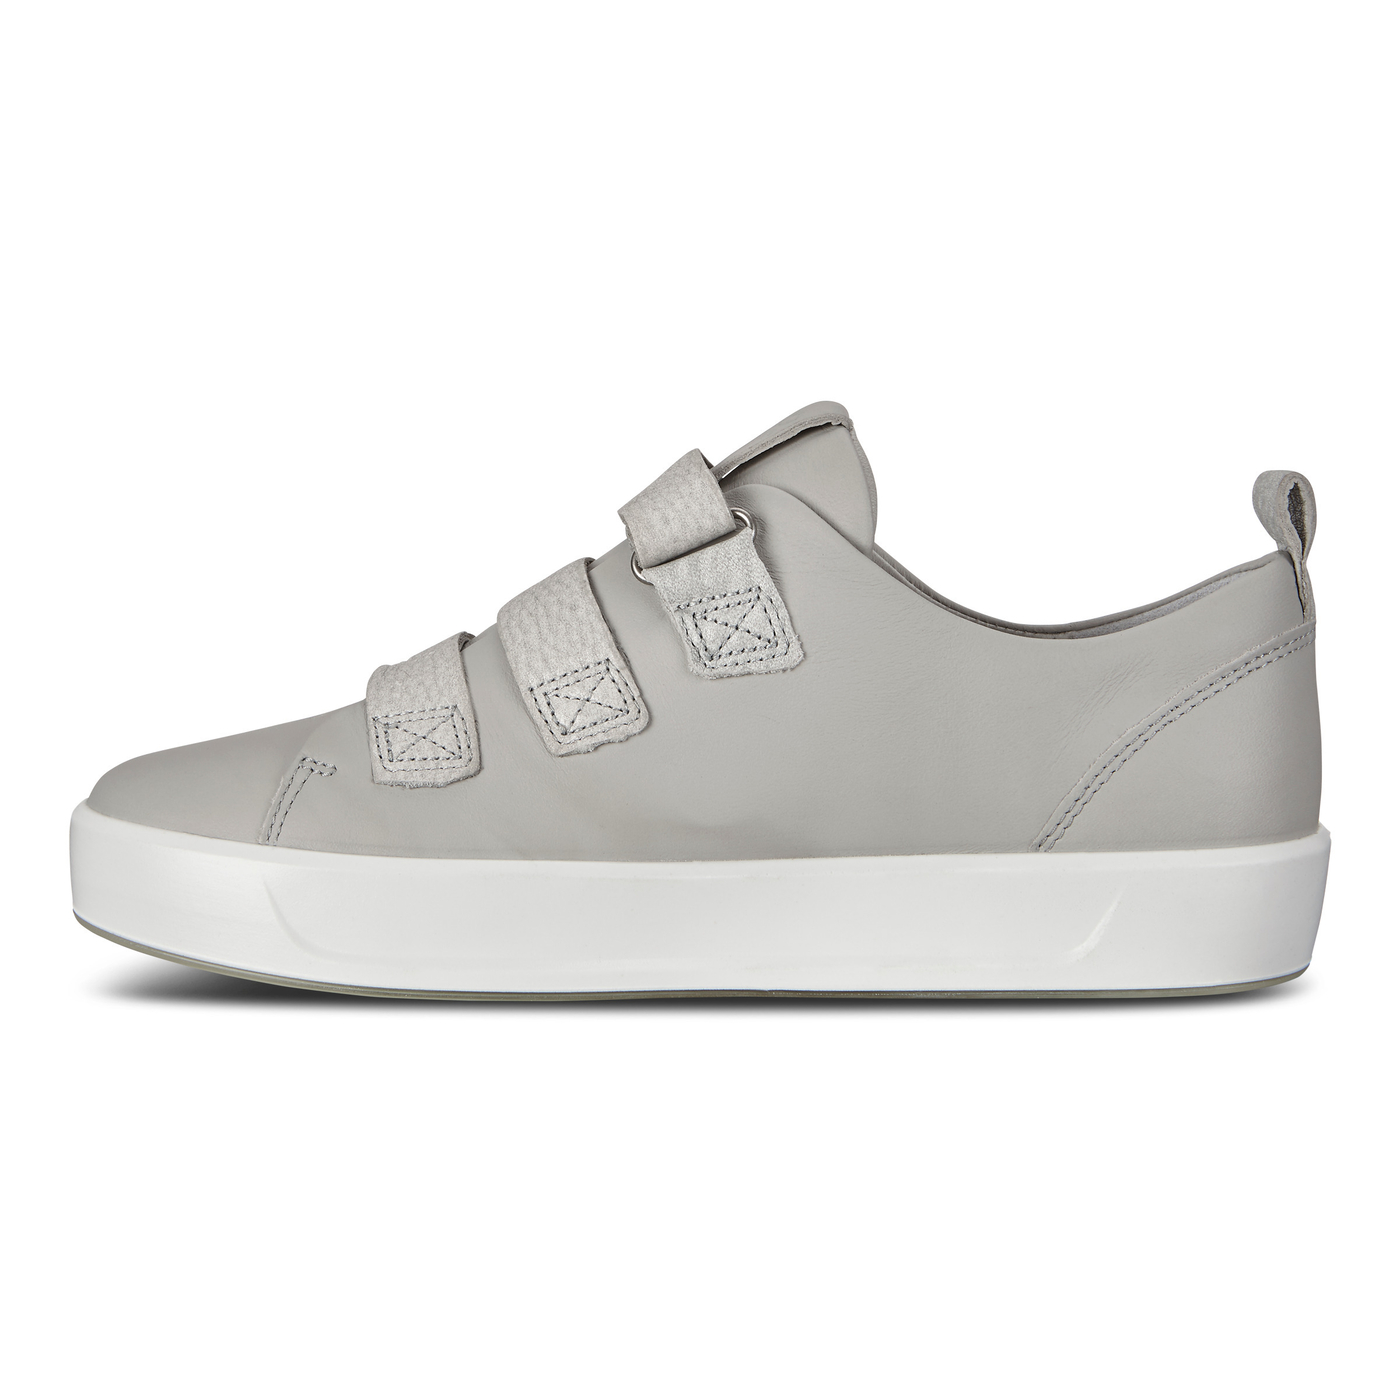 ECCO SOFT8 Womens Shinebright Sneaker Strap